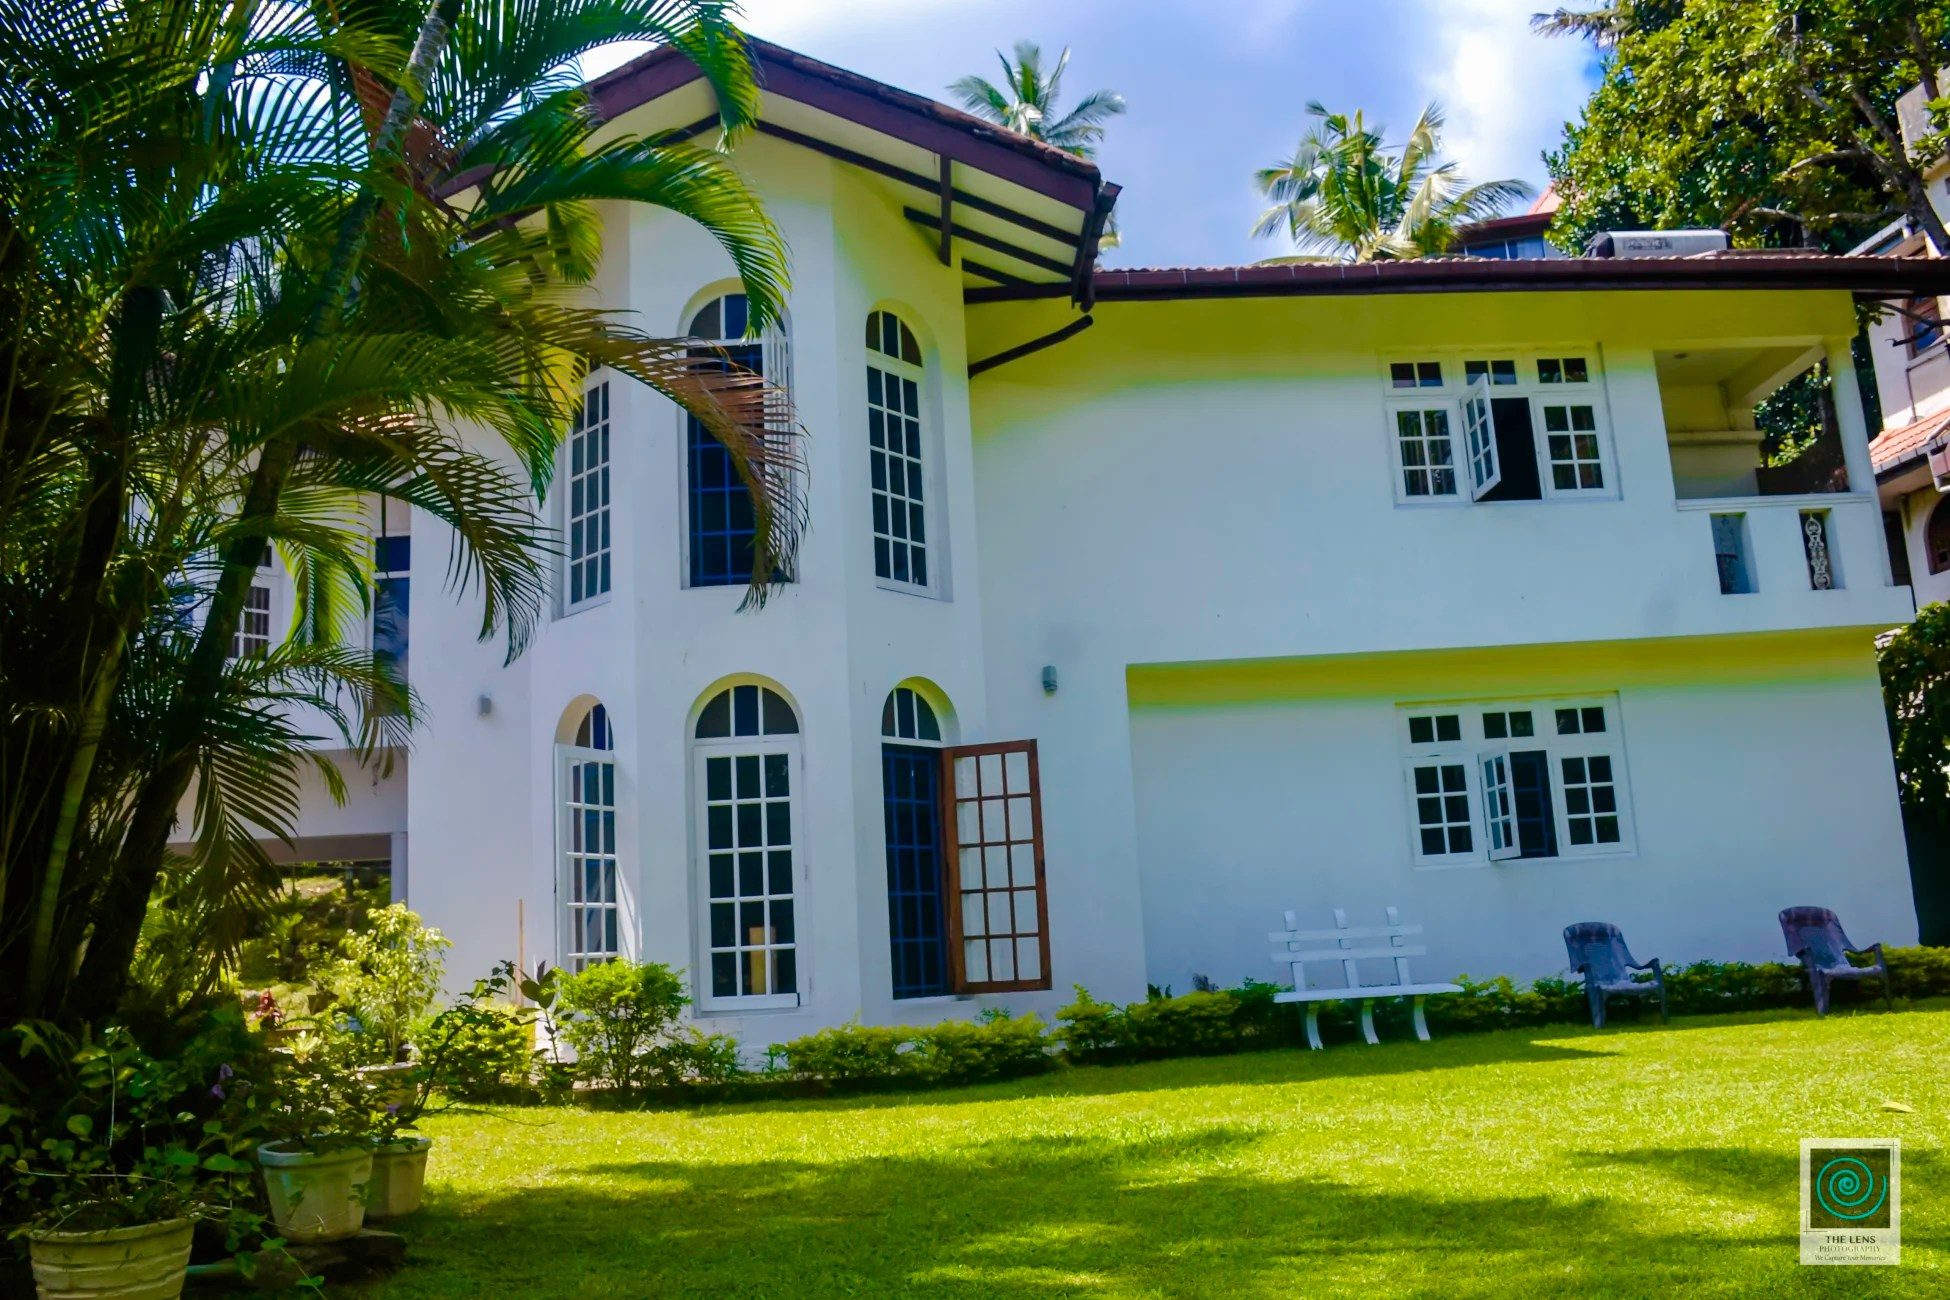 Bed Breakfast Kandy Green View Kandy Trivago Ae